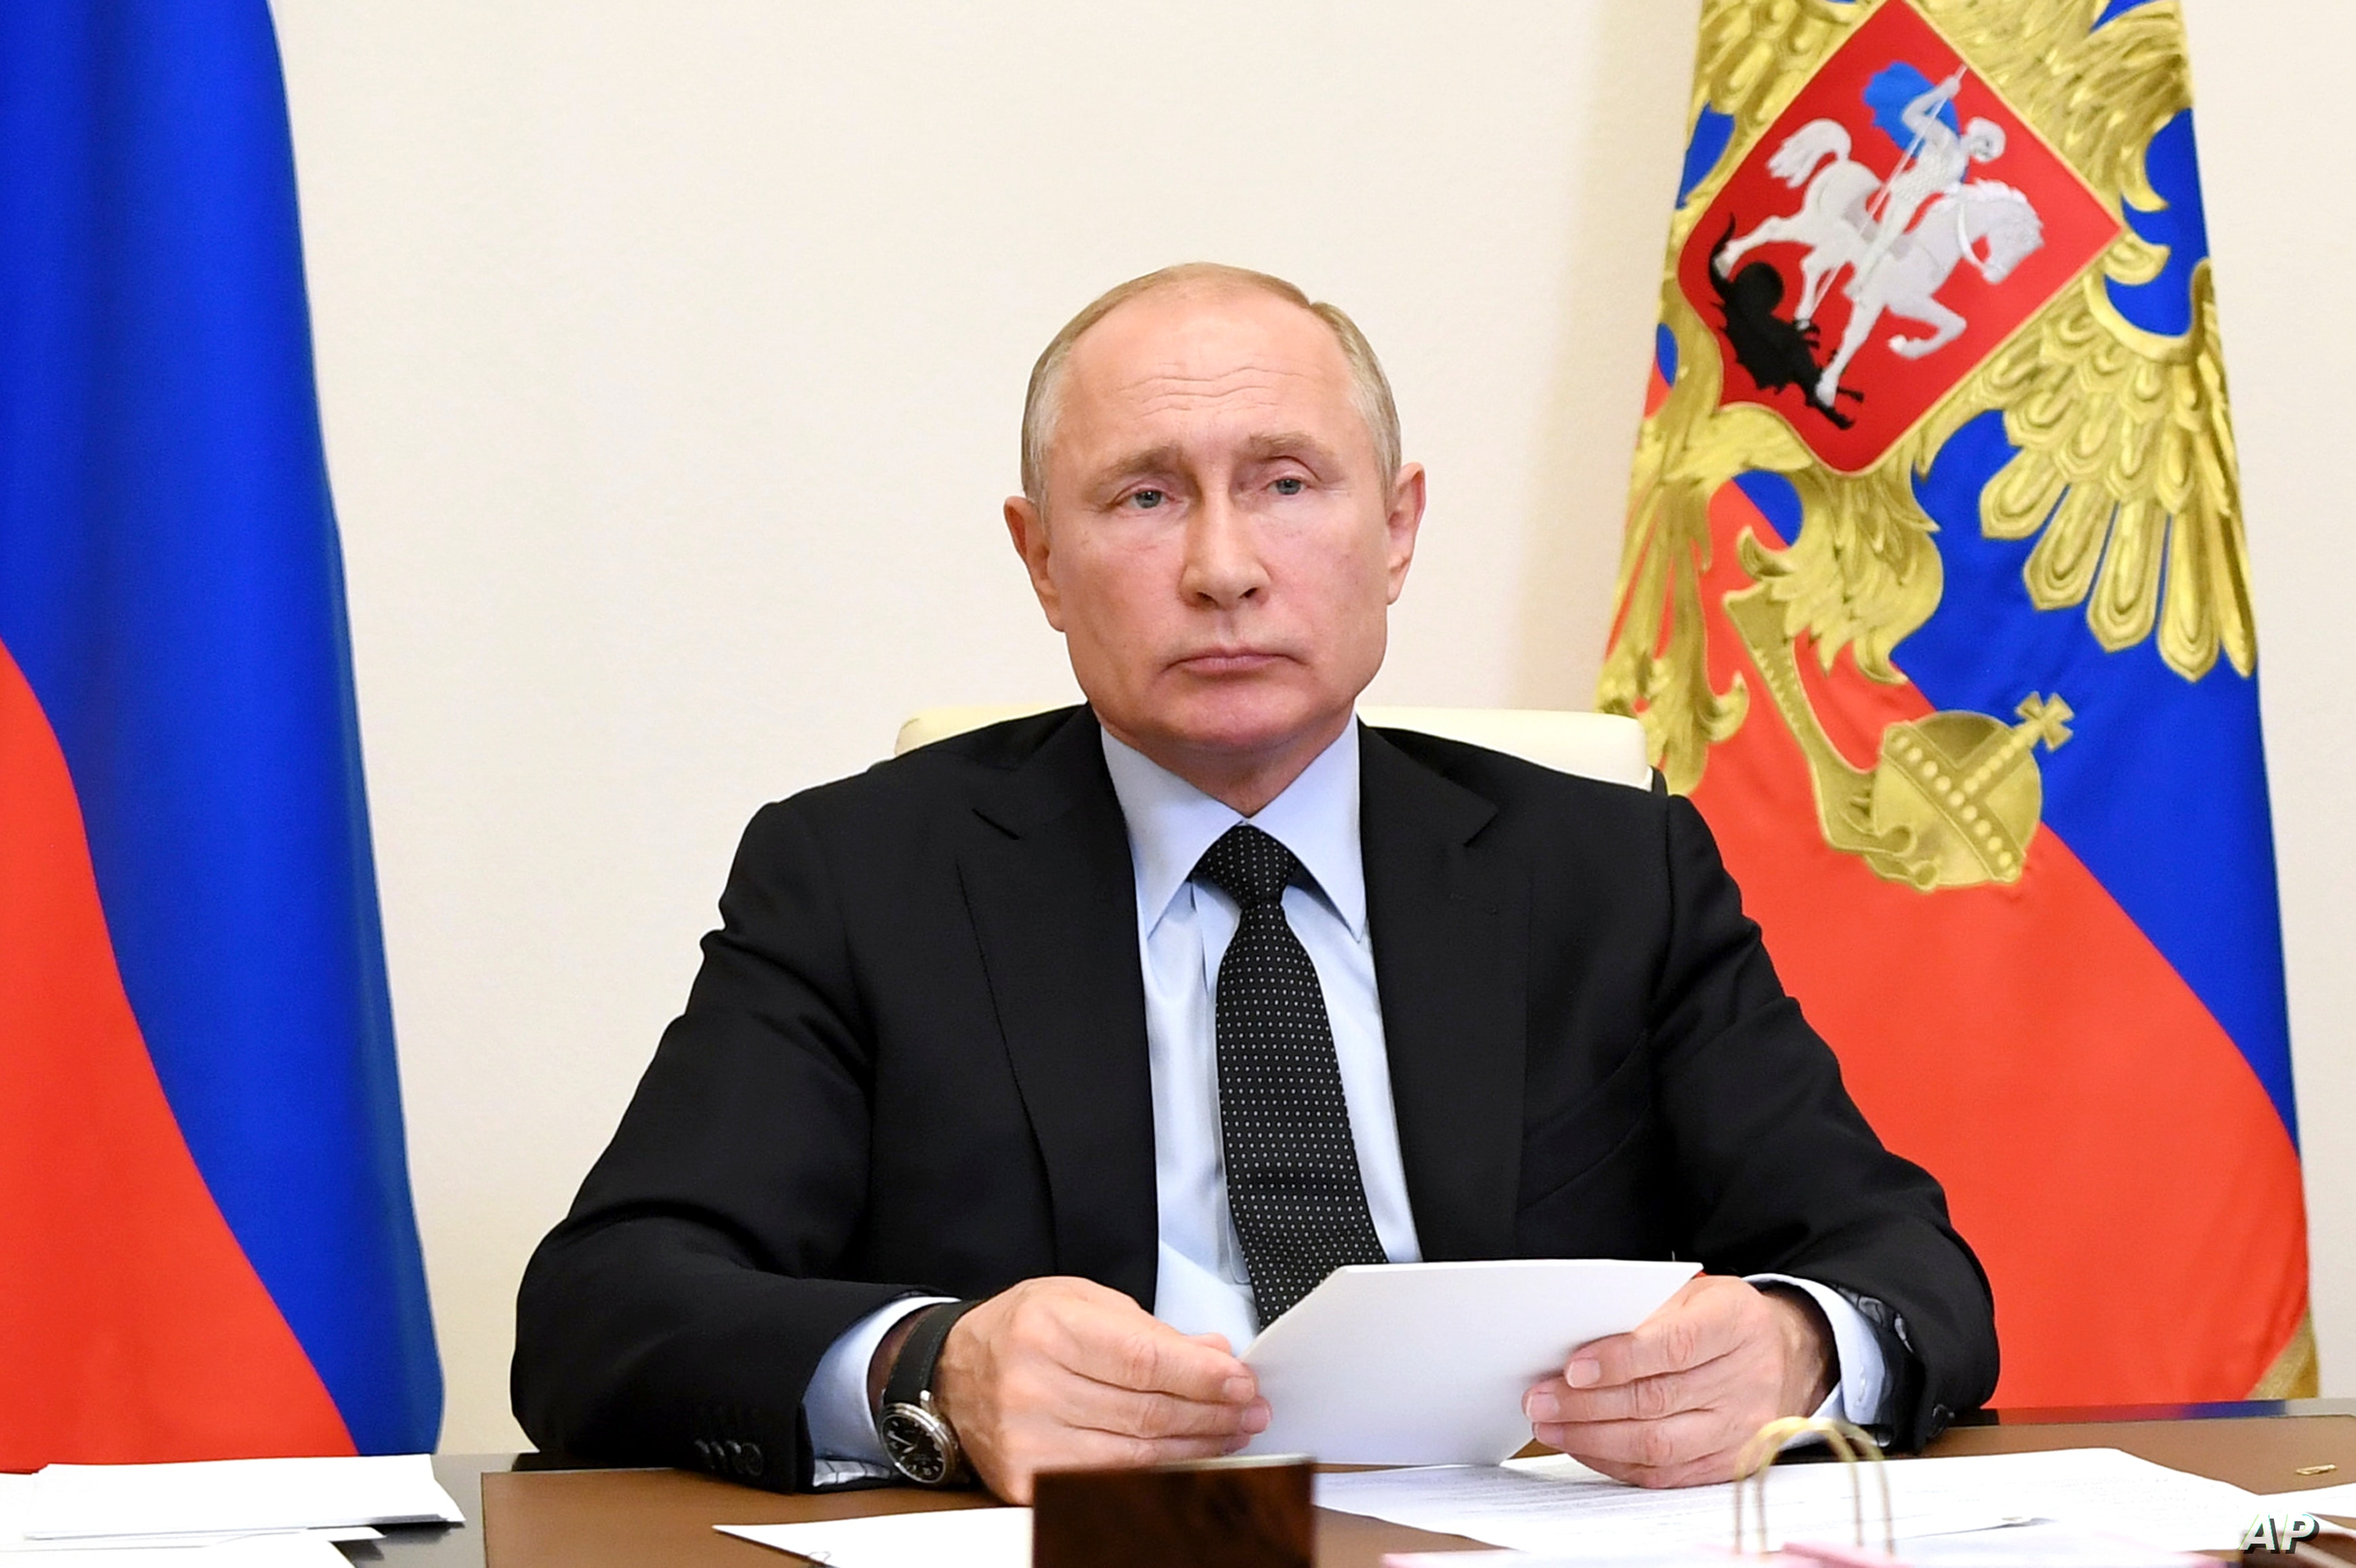 Putin Says Russia Will Be Able To Counter Hypersonic Weapons Voice Of America English